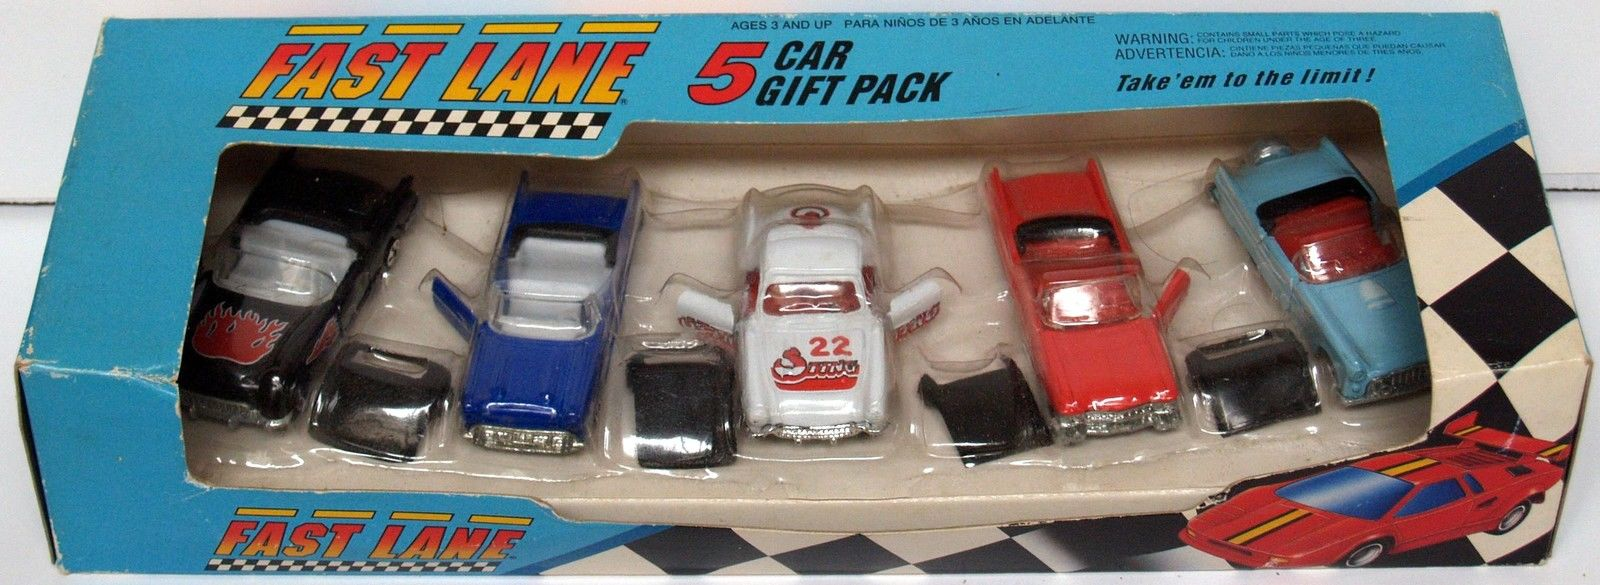 1991 FAST LANE - 5 CAR PACK